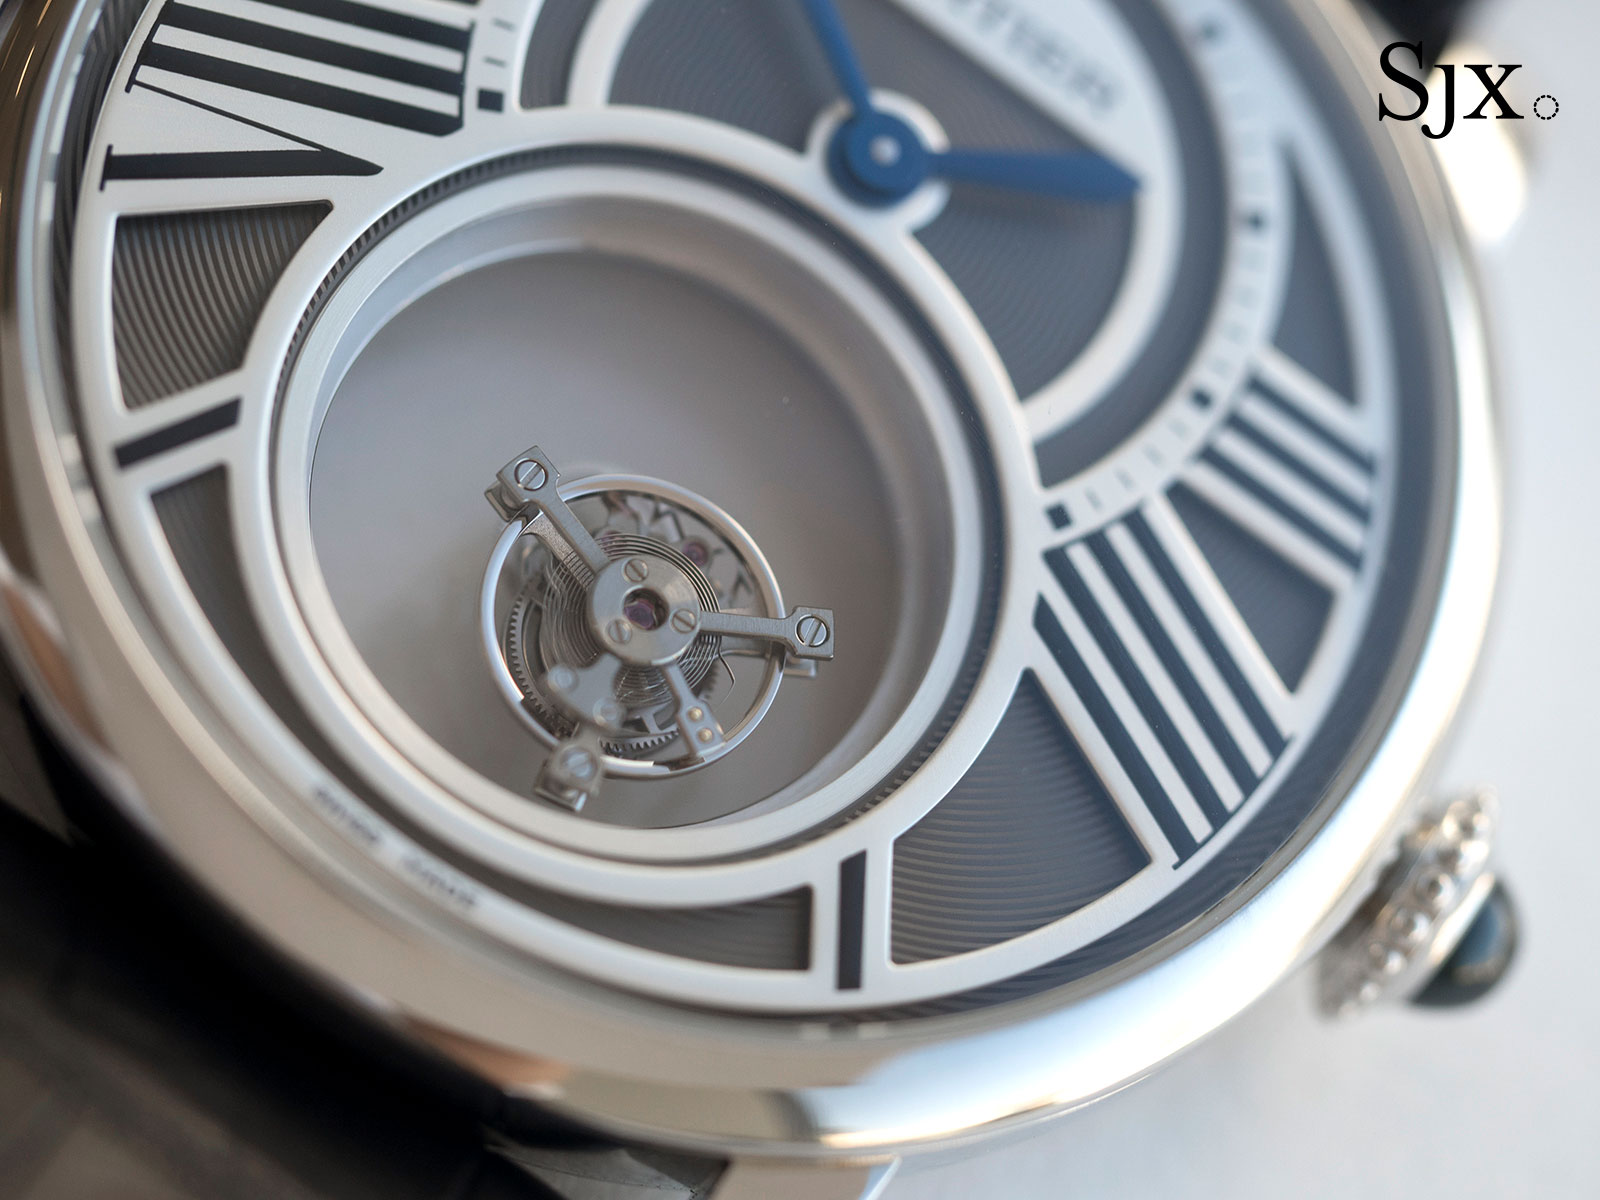 Cartier double mysterious tourbillon sothebys 2